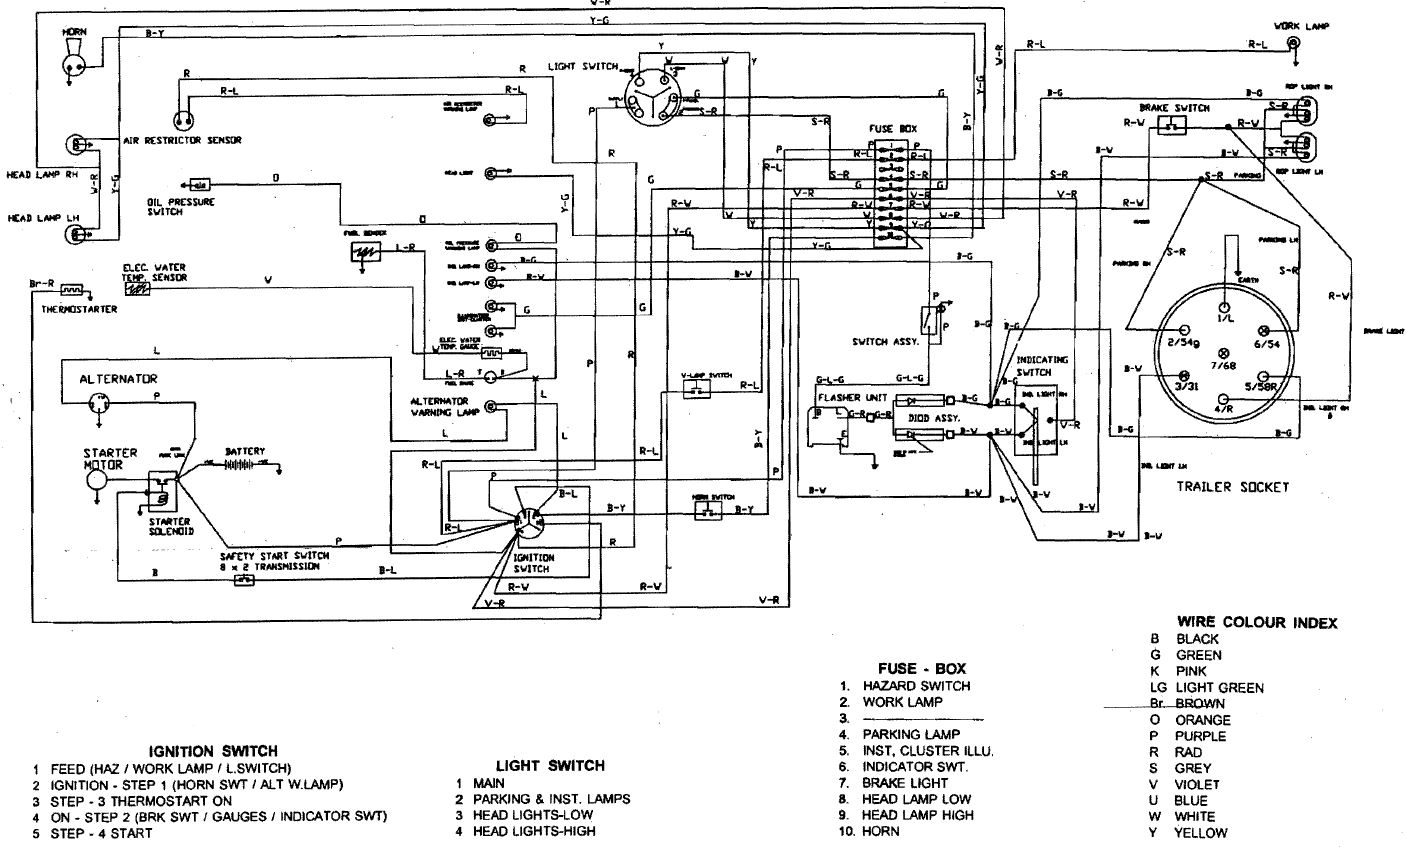 20158463319_b82d524c3d_o ignition switch wiring diagram ignition switch wiring diagram at highcare.asia